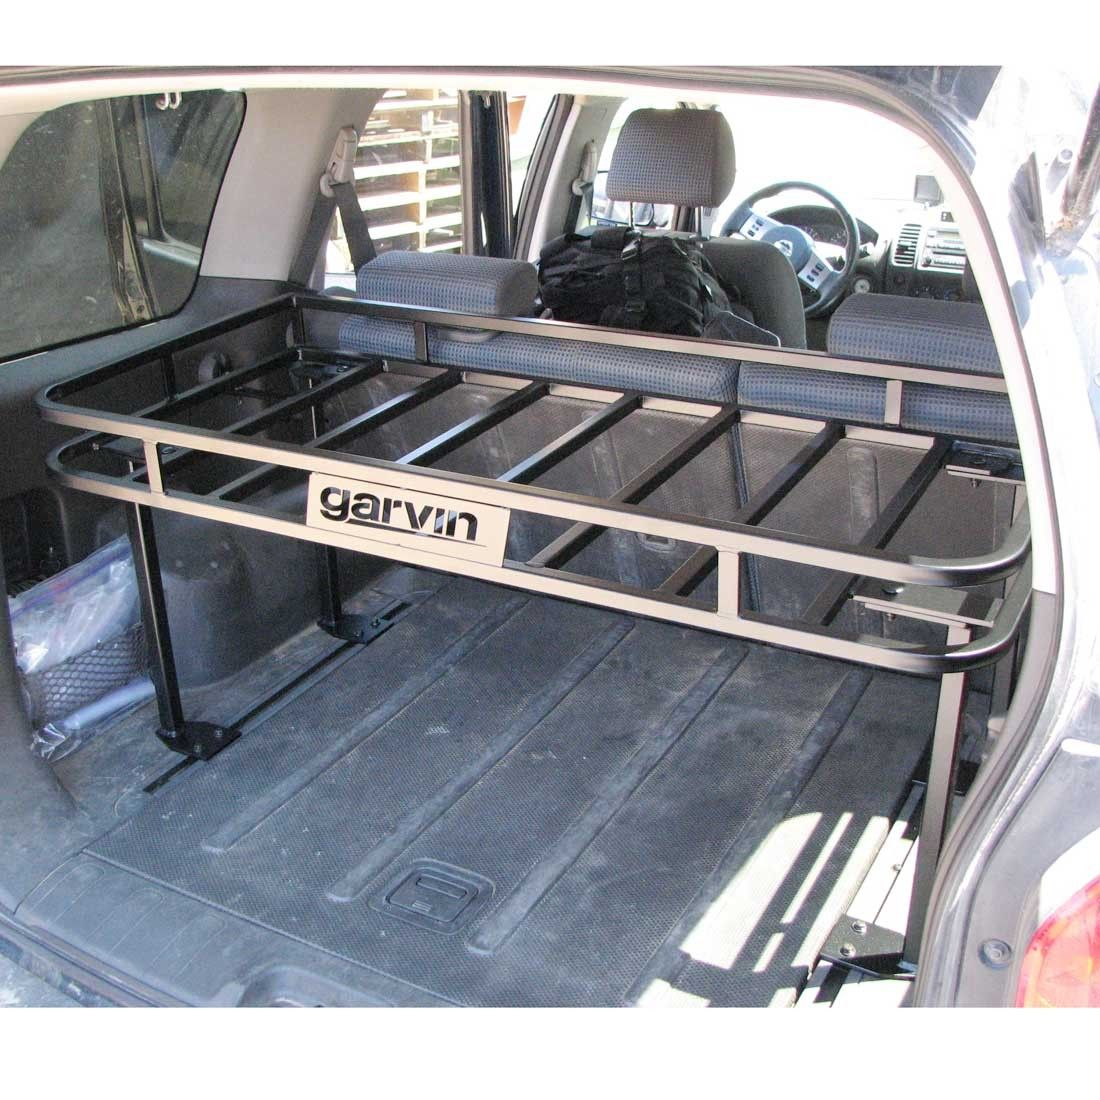 Garvin utility rack 2005 2012 nissan xterra want pinterest nissan xterra nissan and jeeps Nissan xterra bike rack interior